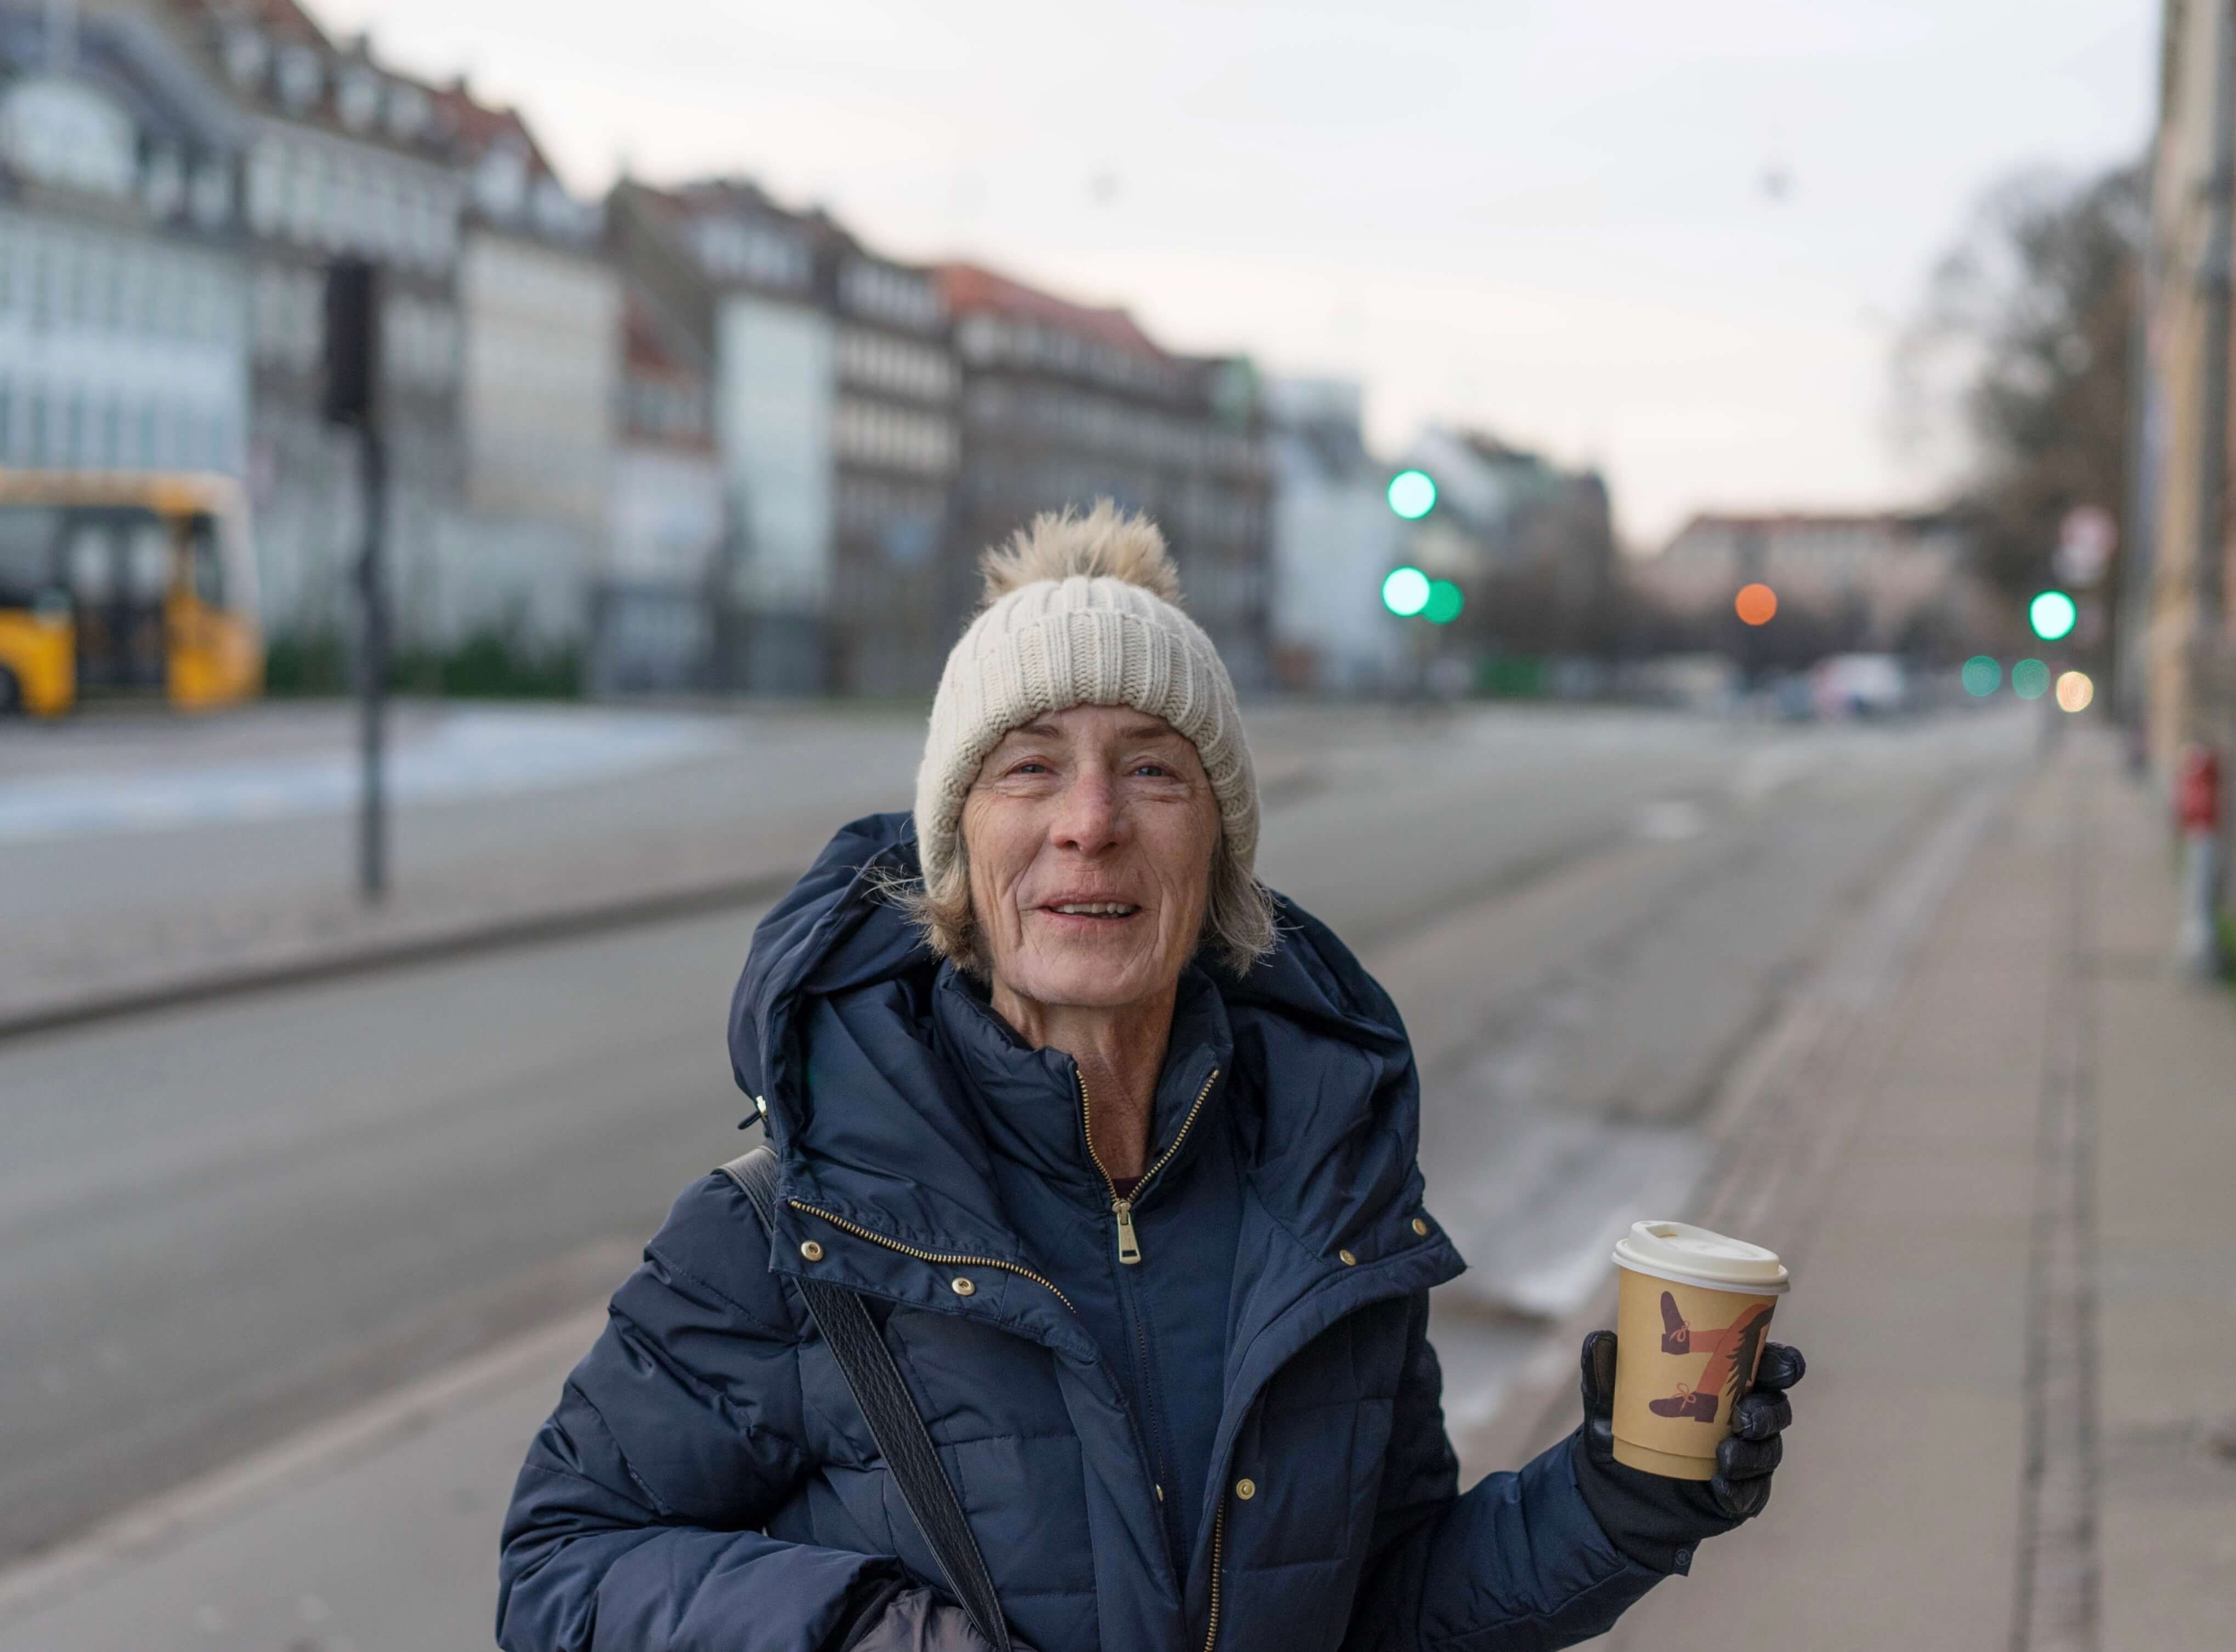 Woman bundled up in large jacket holding coffee cup with surprised smile on her face